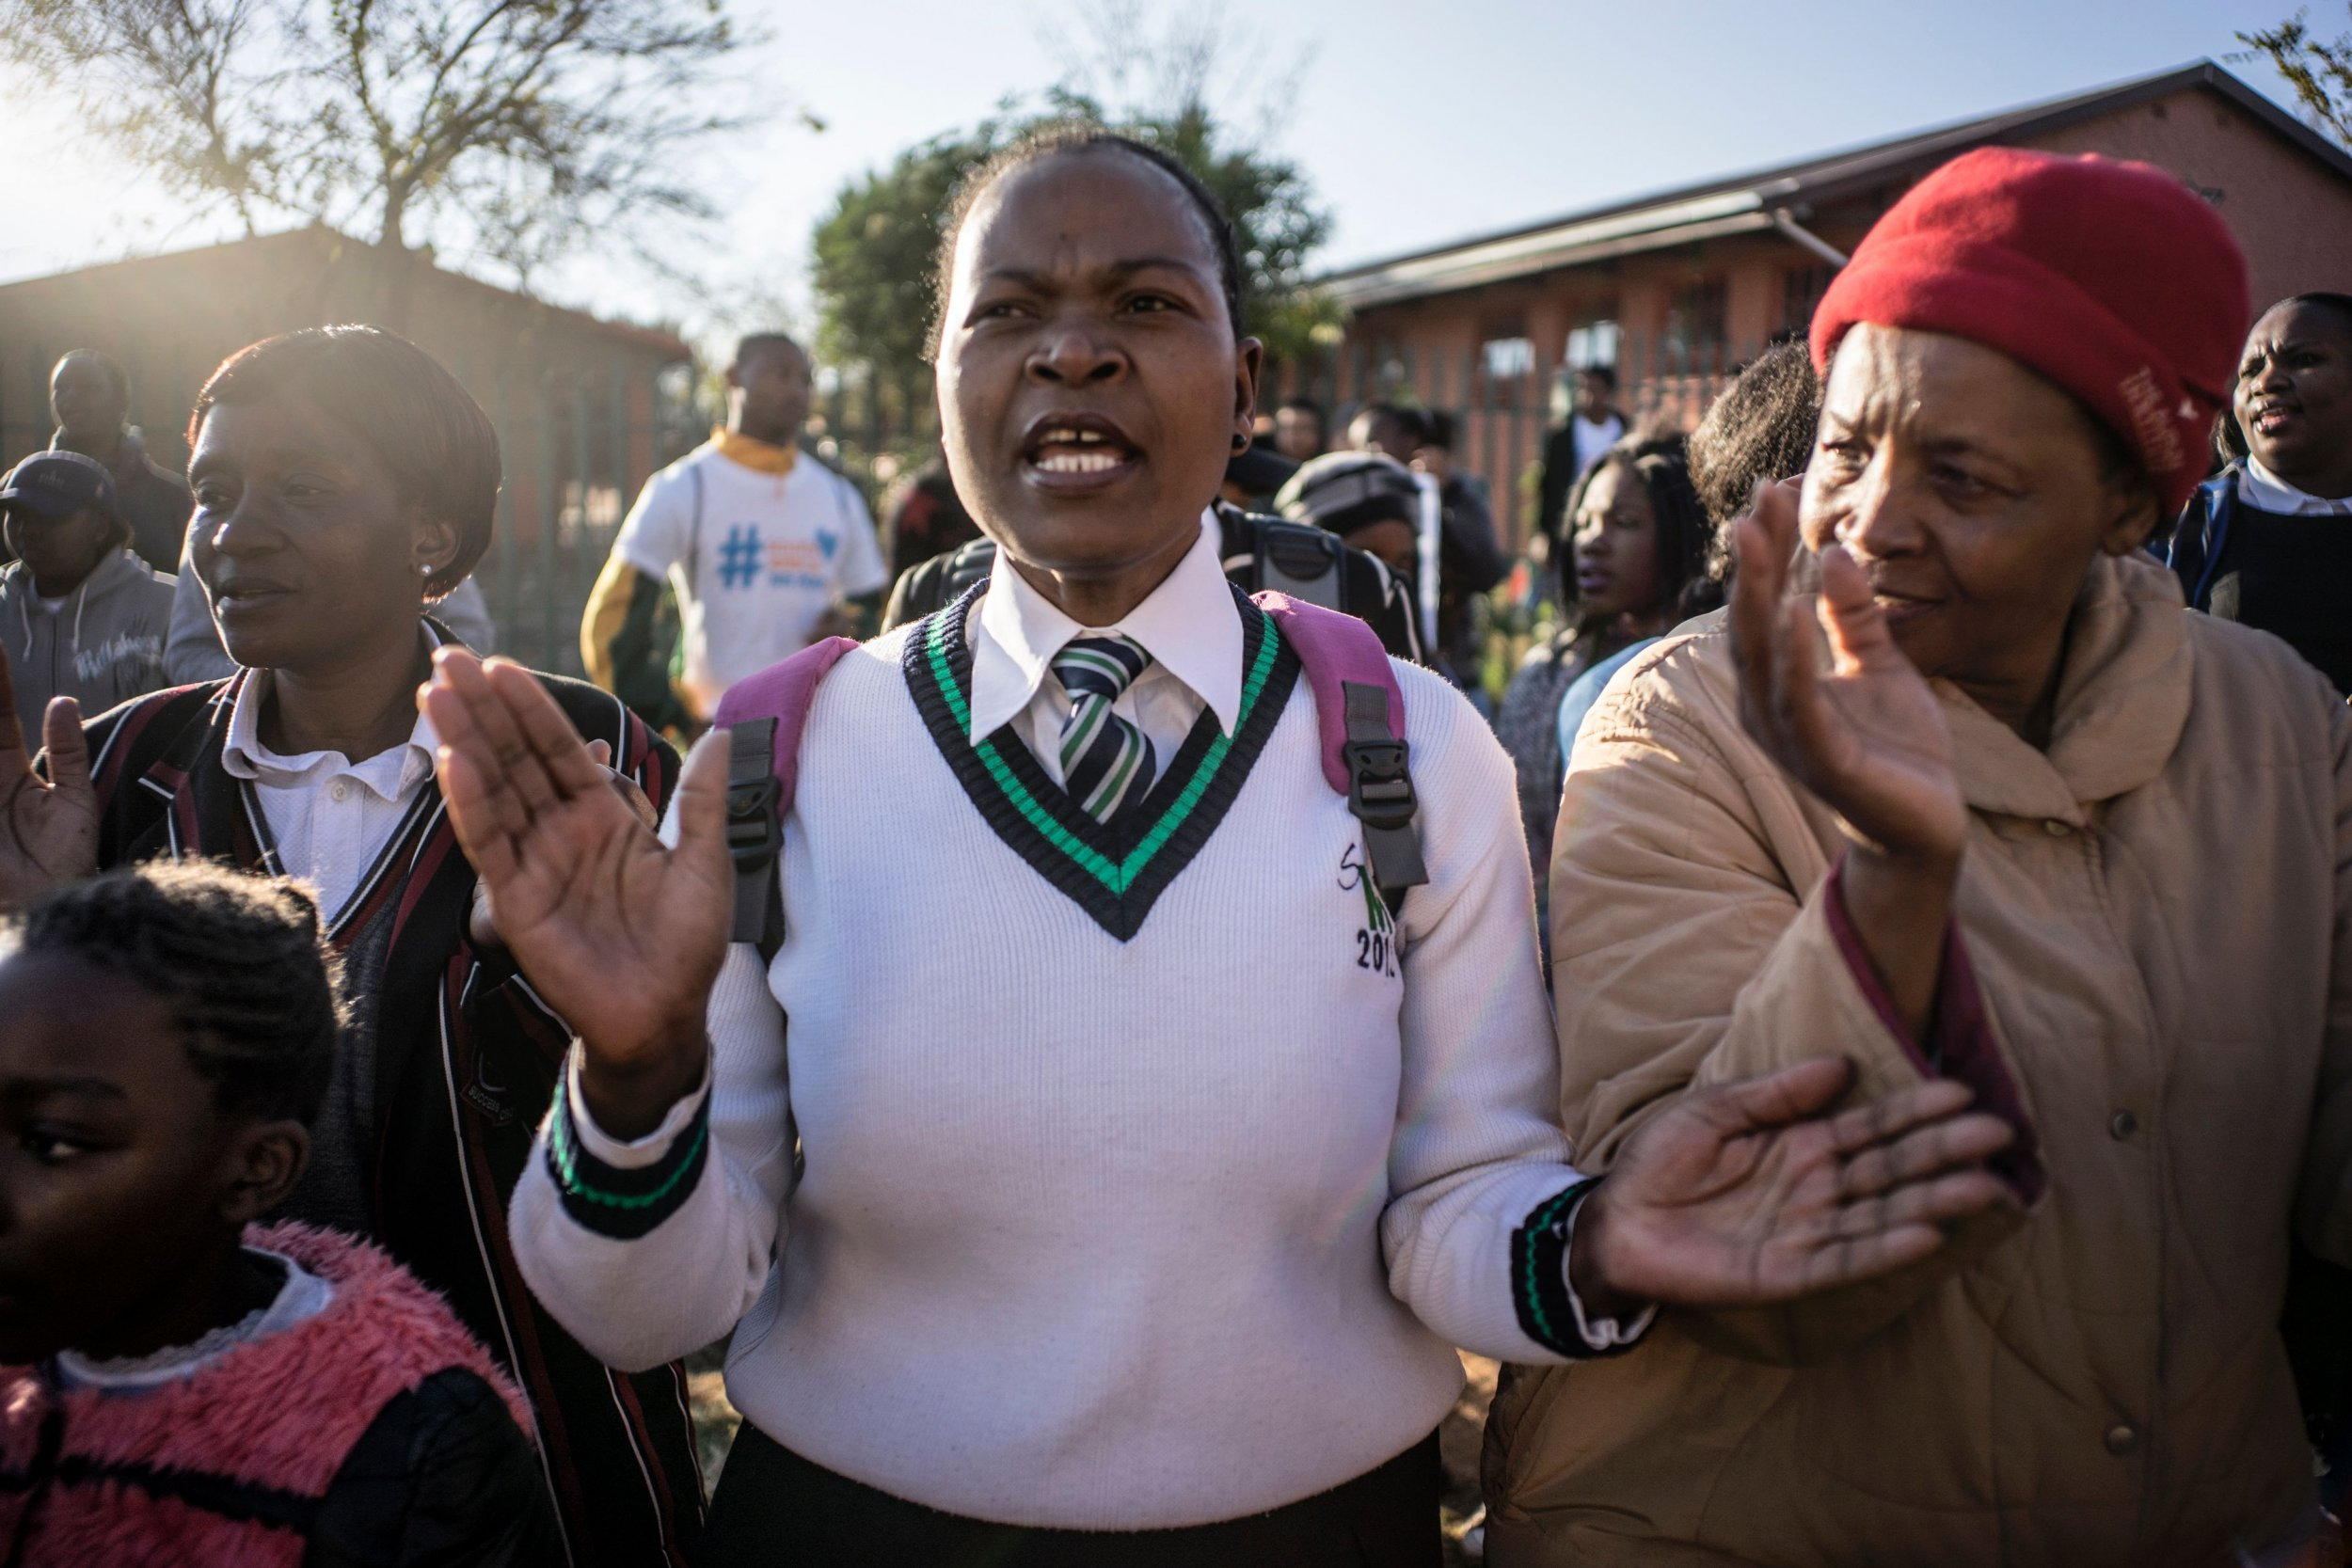 South Africa Racist Hair Rules Suspended After Student